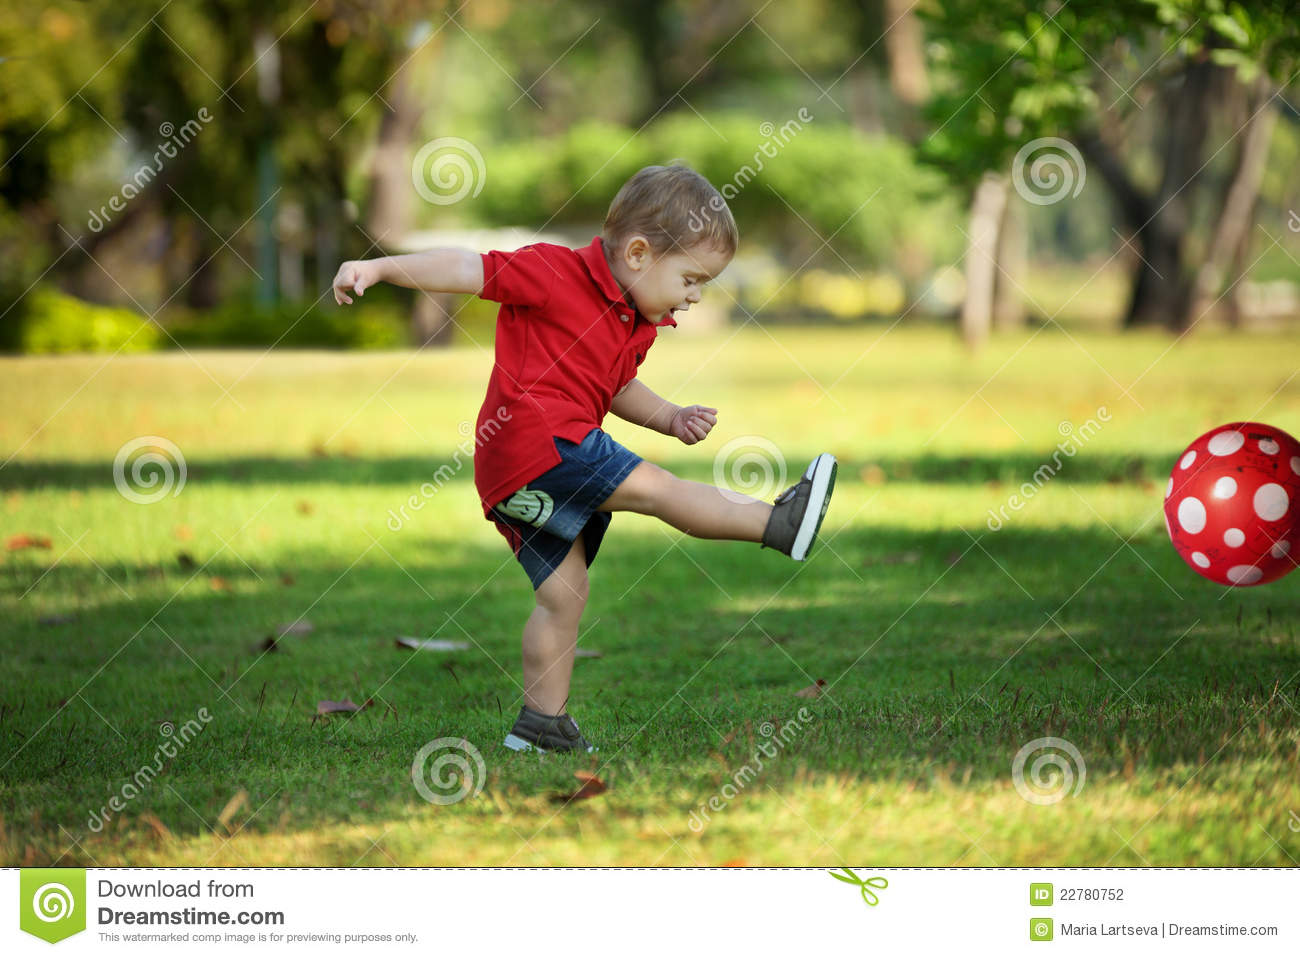 Infant boy in red shirt kicking red football out of frame in park.